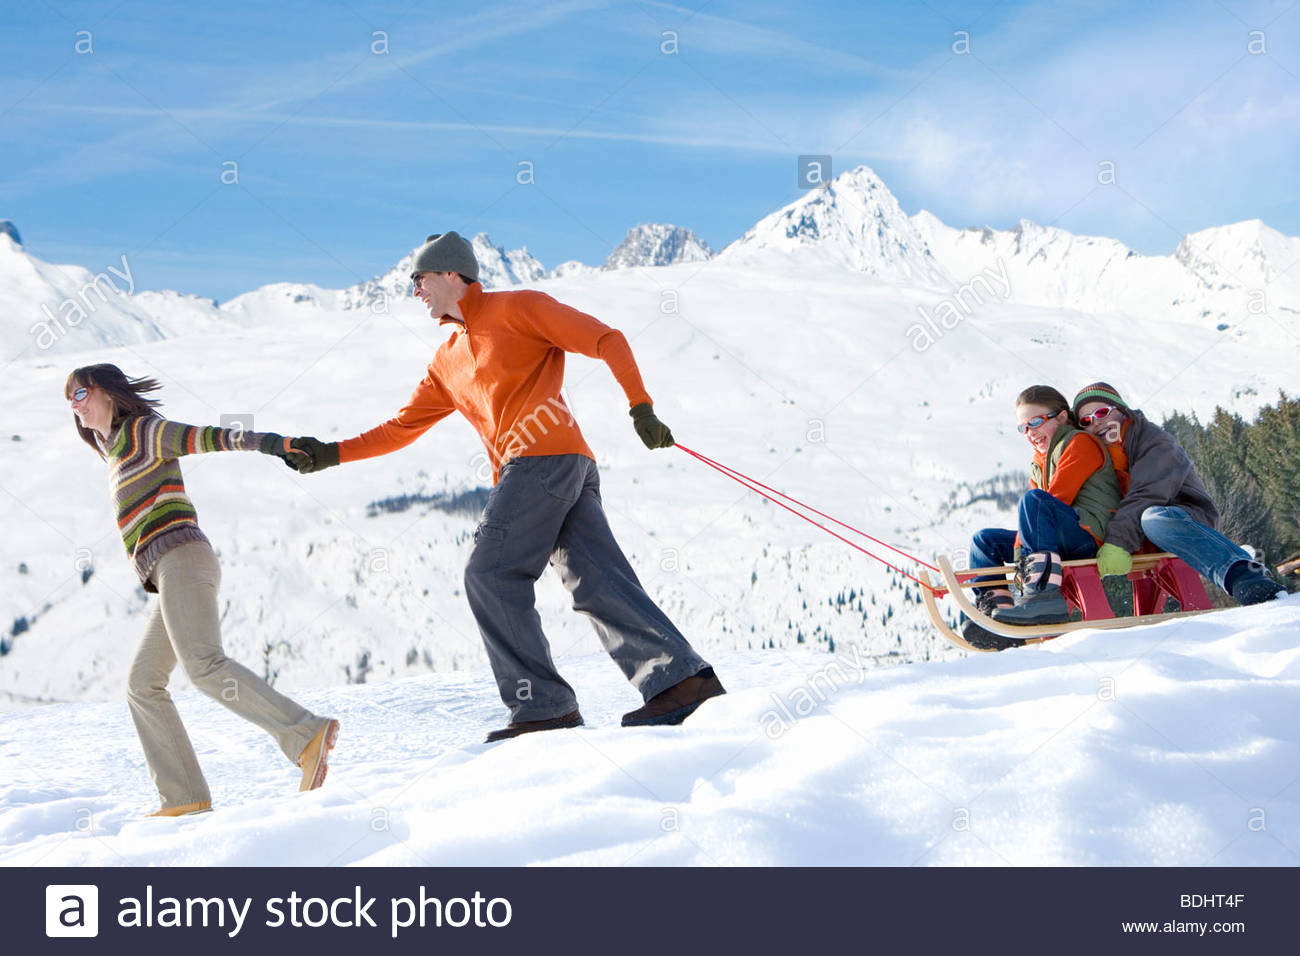 Family pulling sled in the snow - Stock Image